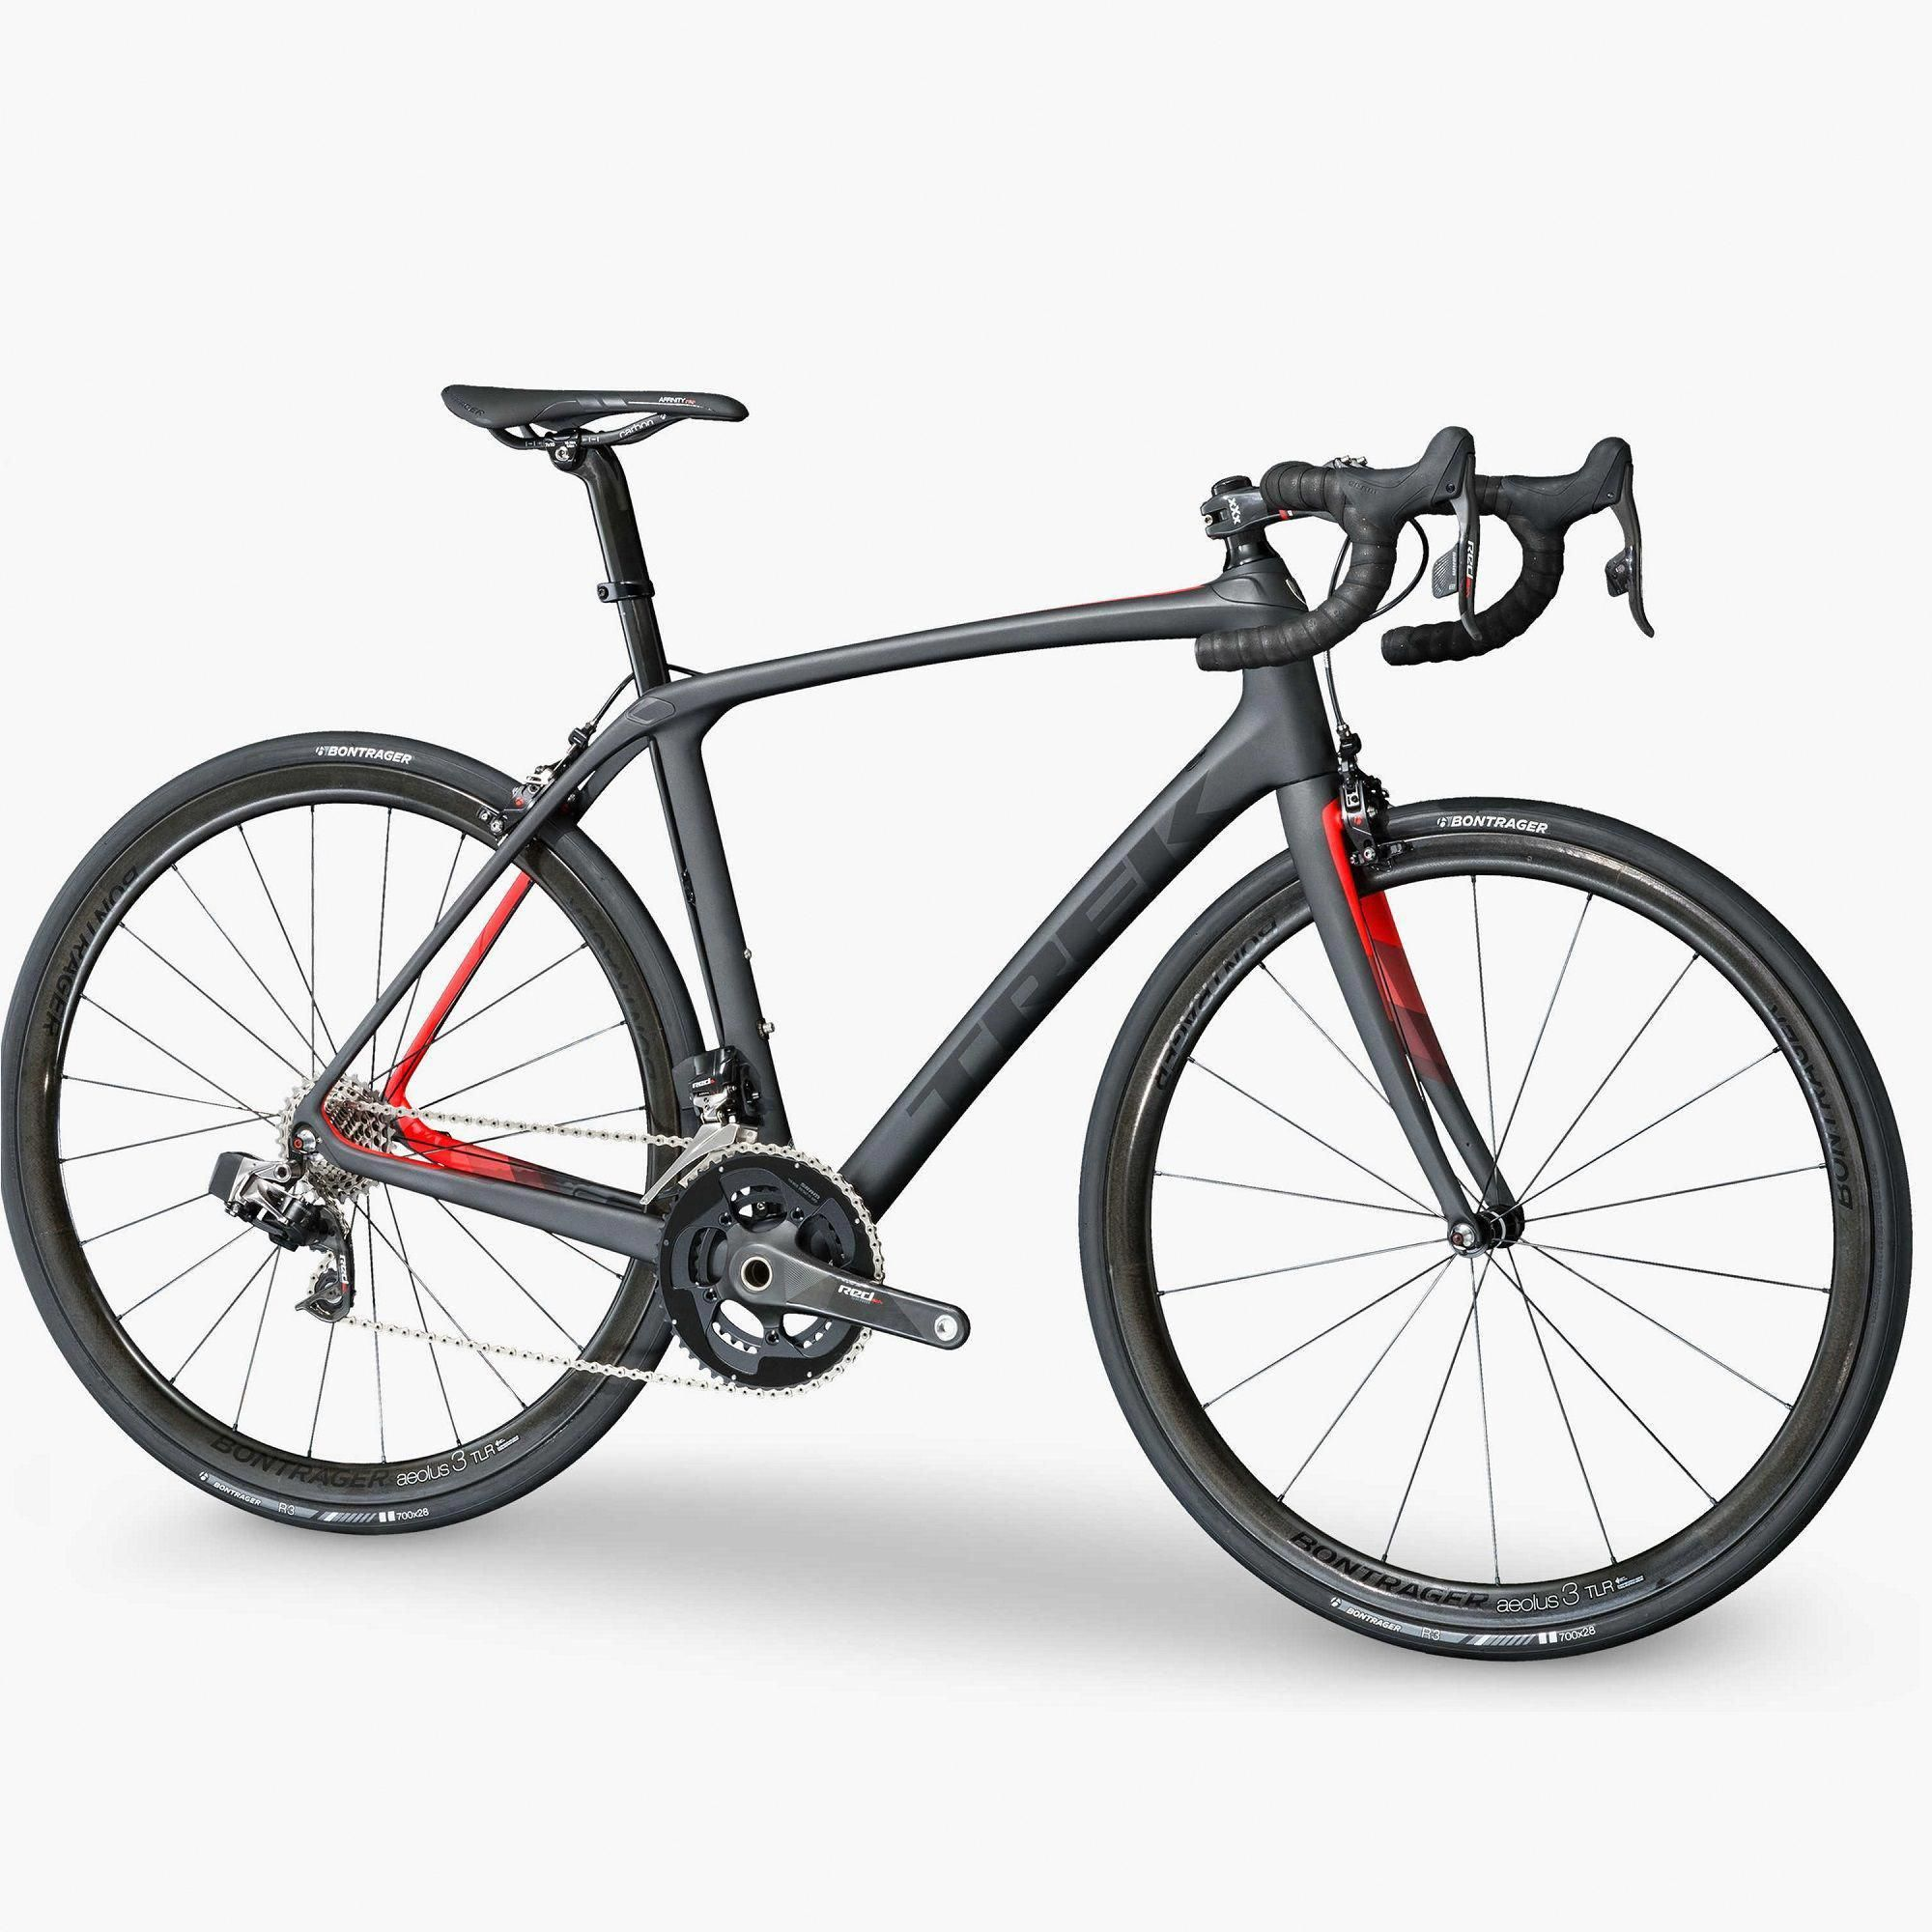 Trek Domane SLR 9 eTap - 2017 Road Bike #CyclingBargains #DealFinder #Bike #BikeBargains #Fitness Vi...